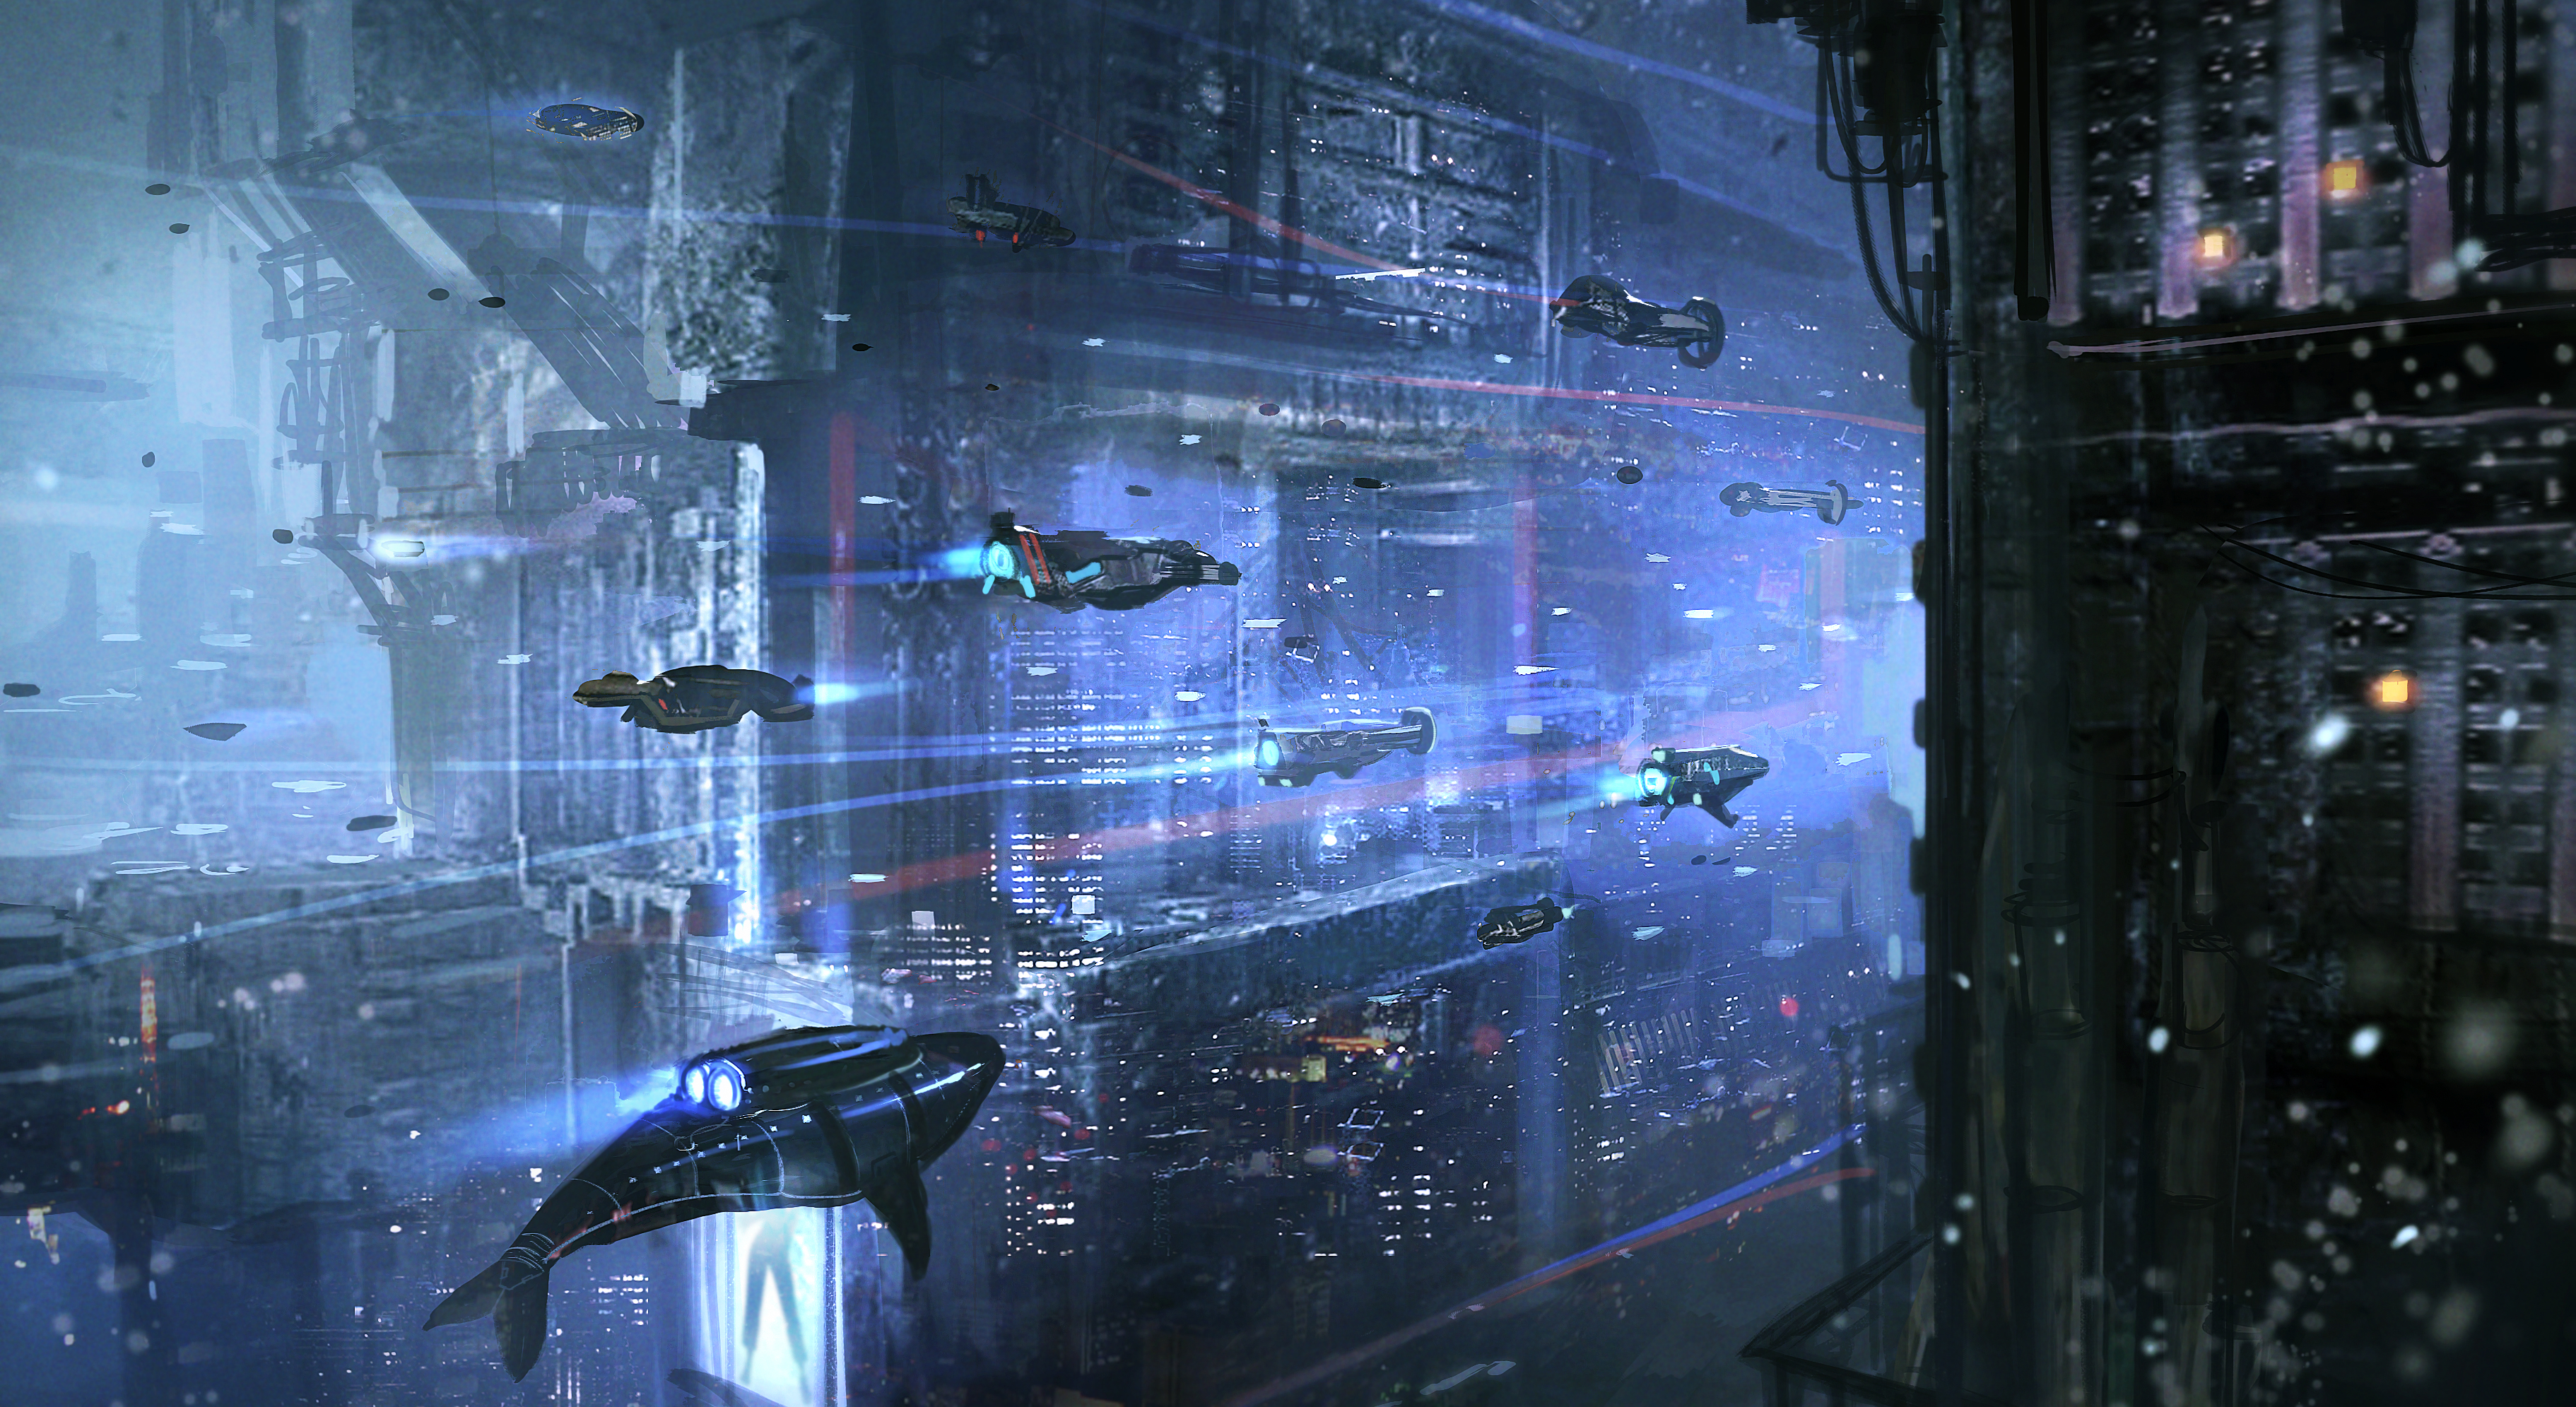 Underwater cyberpunk city full hd wallpaper and background image sci fi cyberpunk wallpaper voltagebd Choice Image